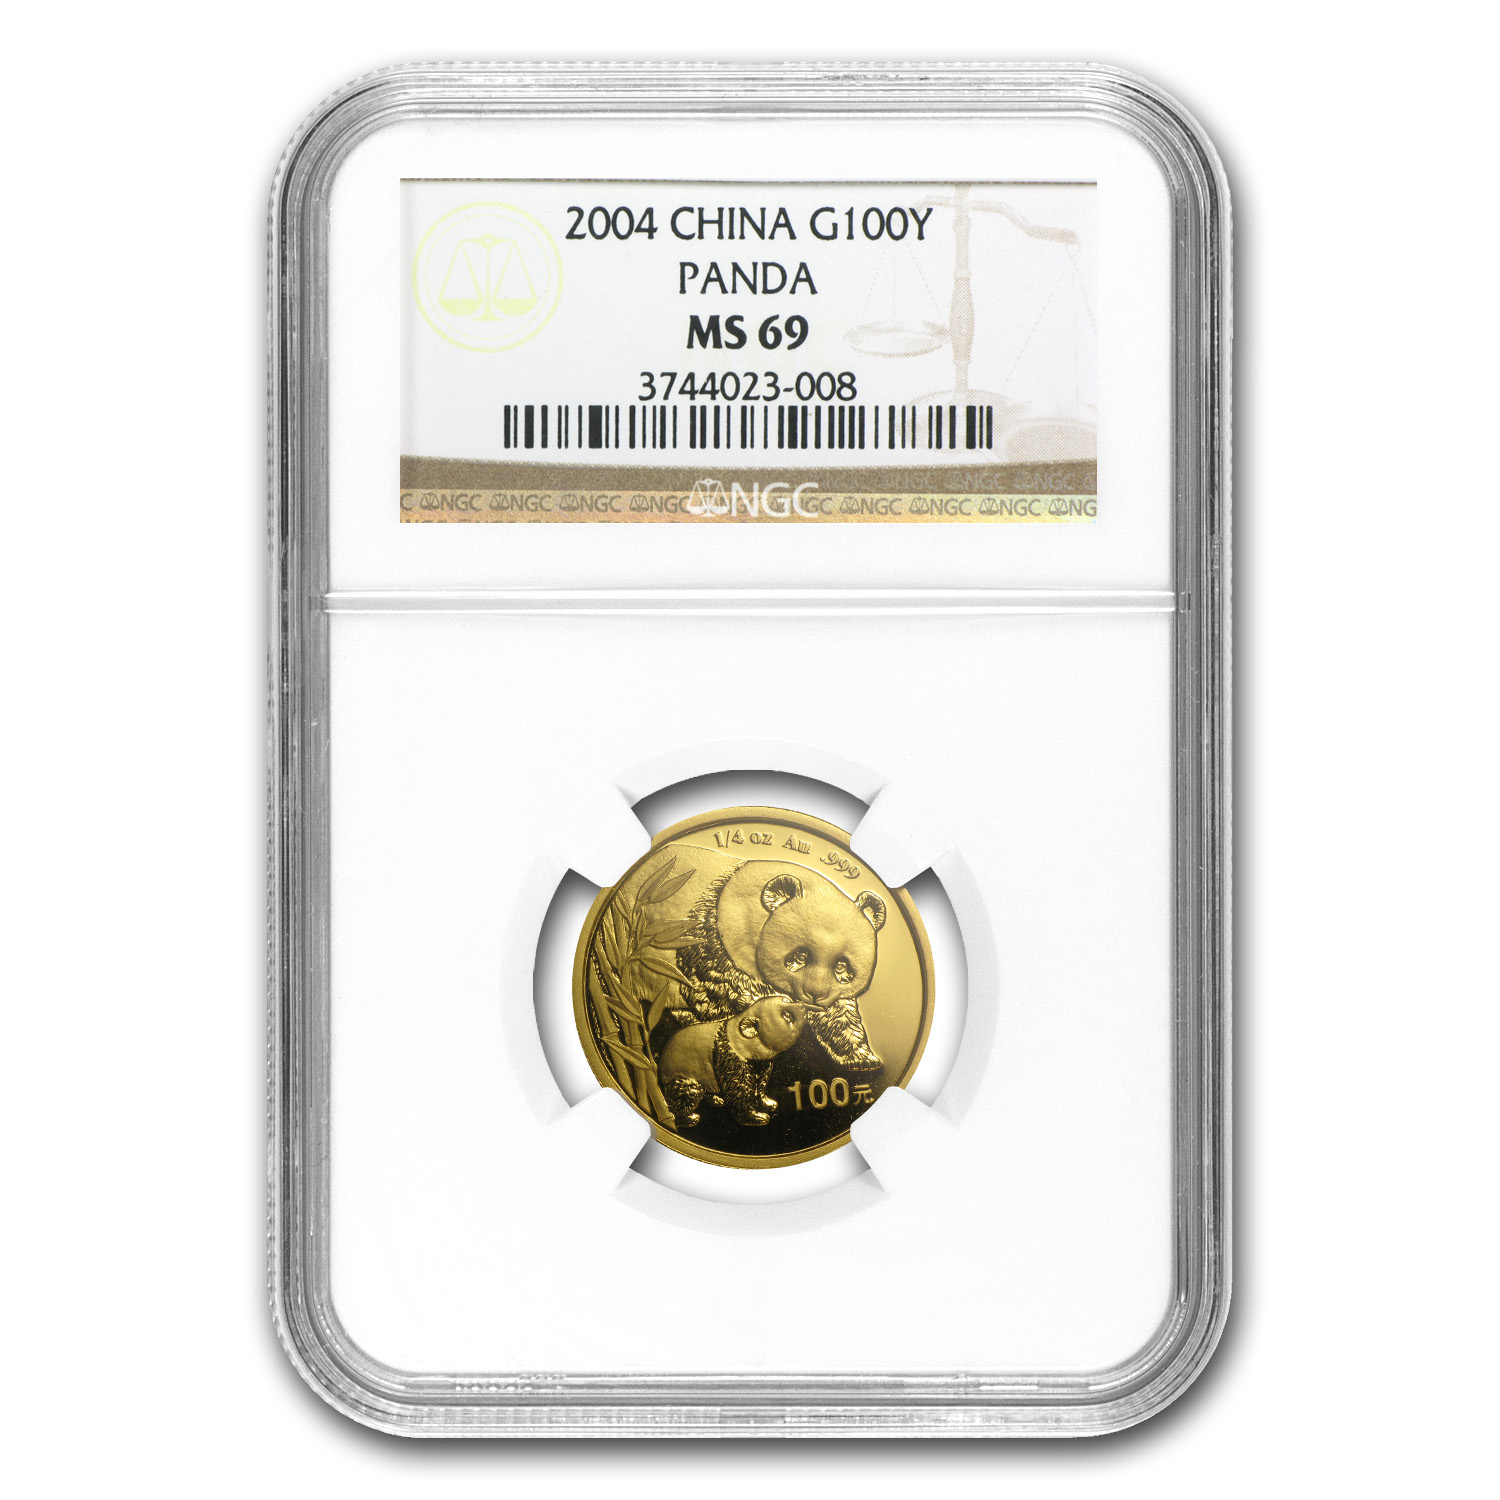 2004 China 1/4 oz Gold Panda MS-69 NGC